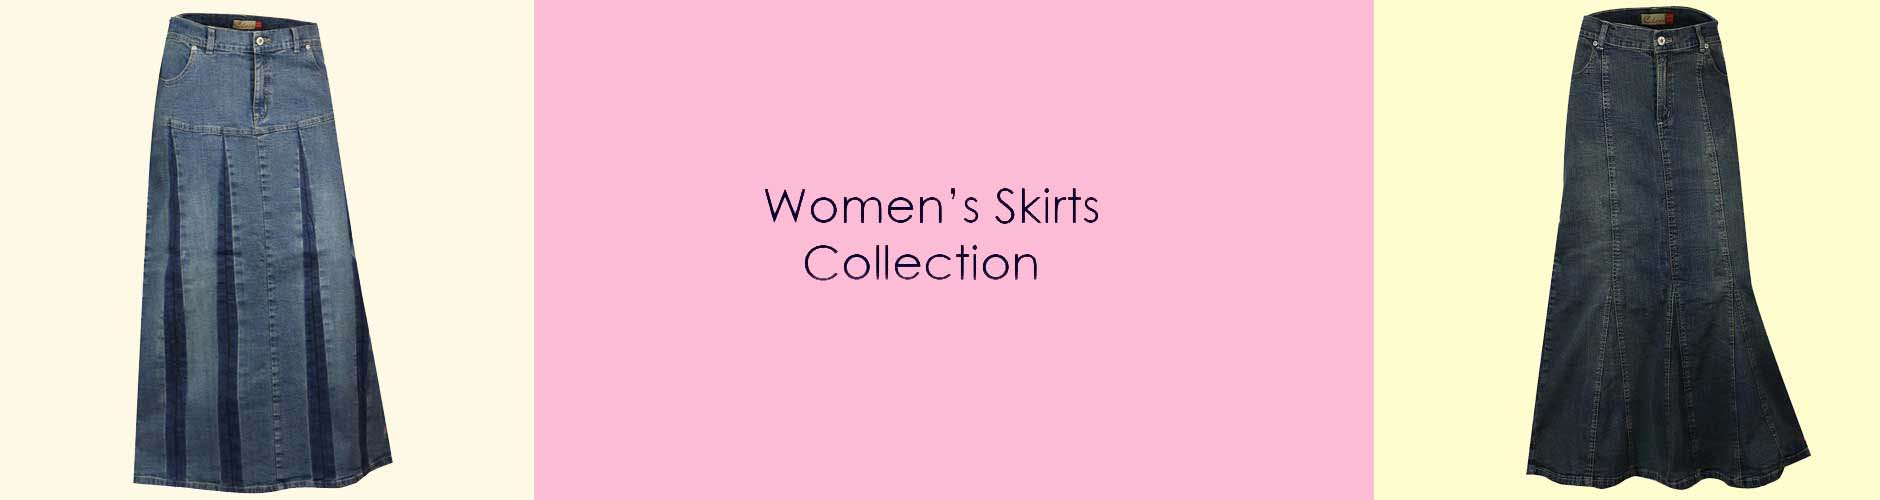 denim skirts for women